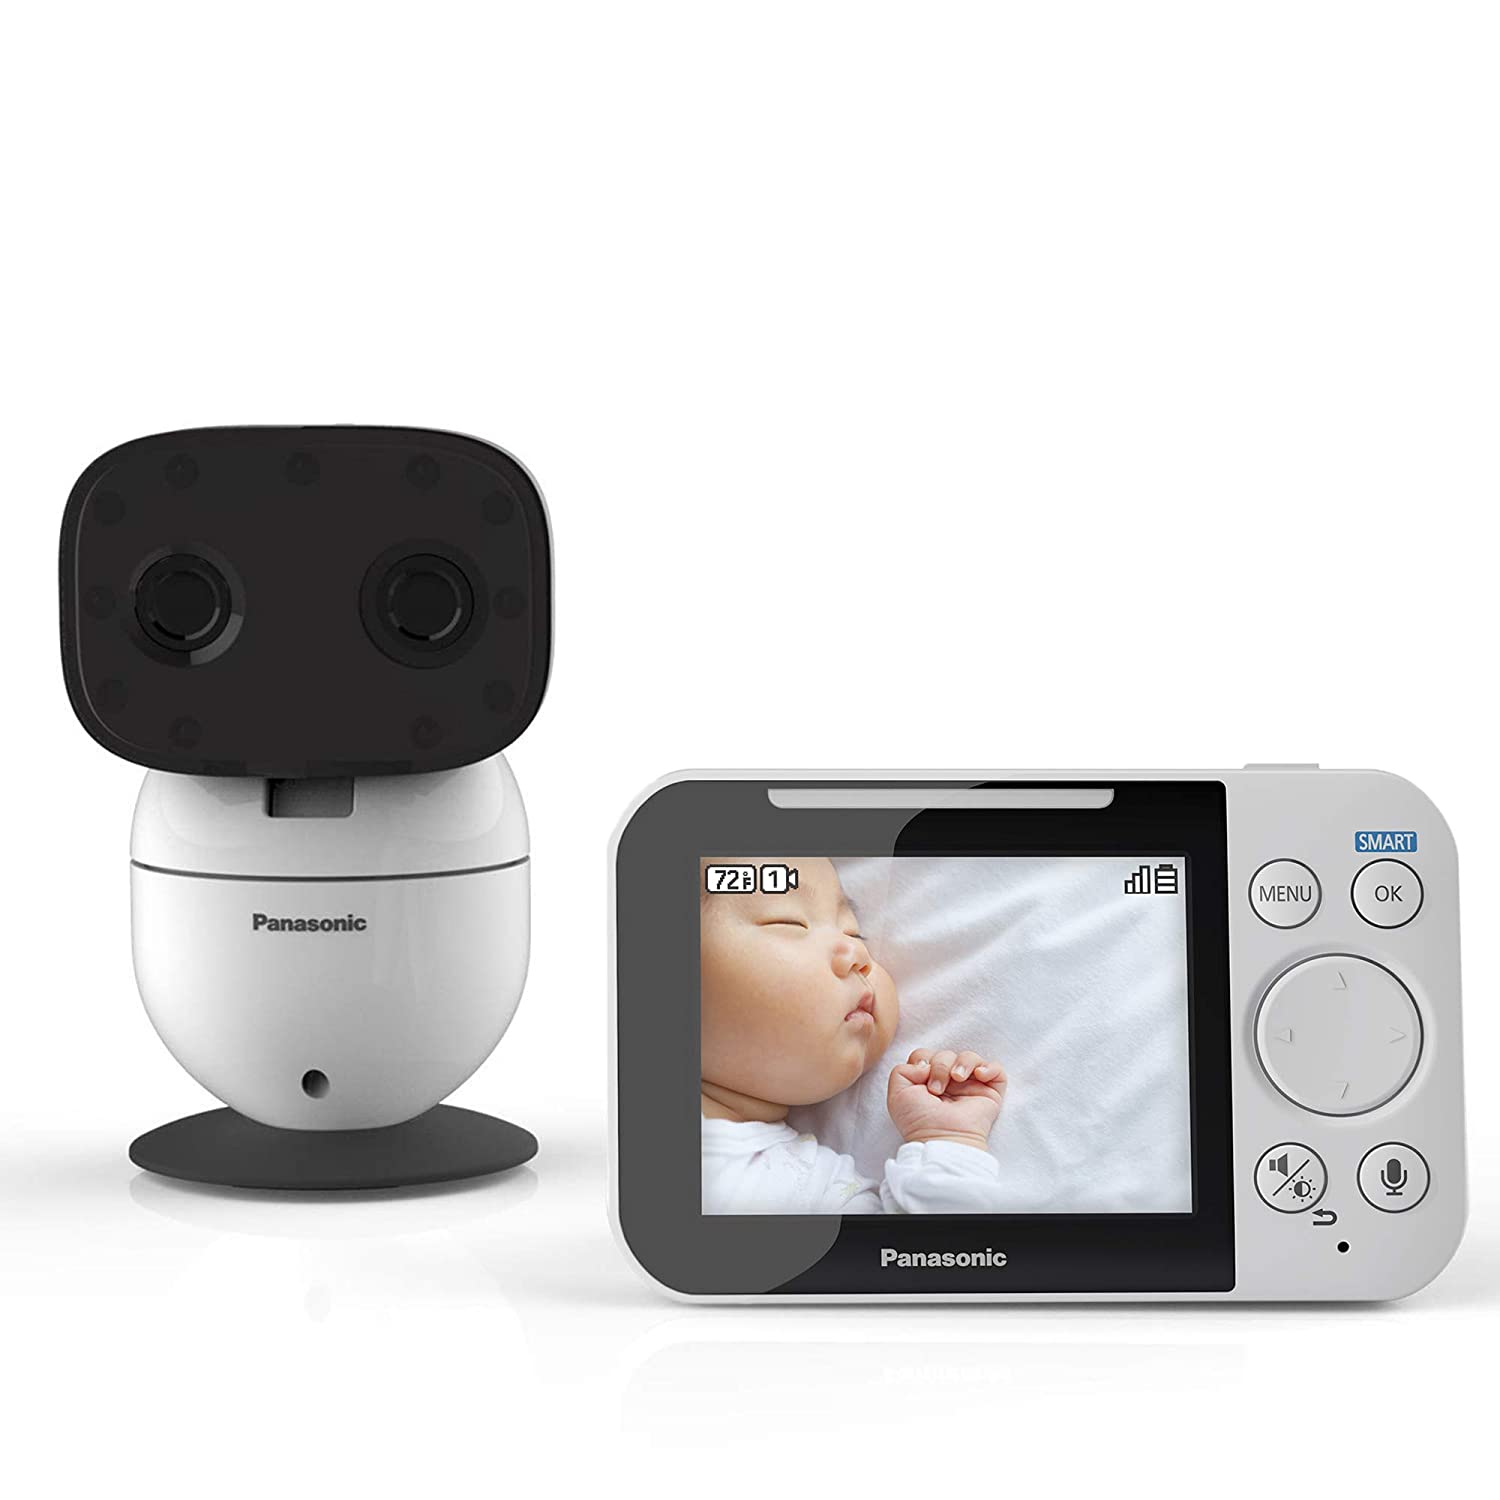 Panasonic Video Baby Monitor with Remote Pan/Tilt/Zoom, Wide-Angle Lens,  Extra Long Audio/Video